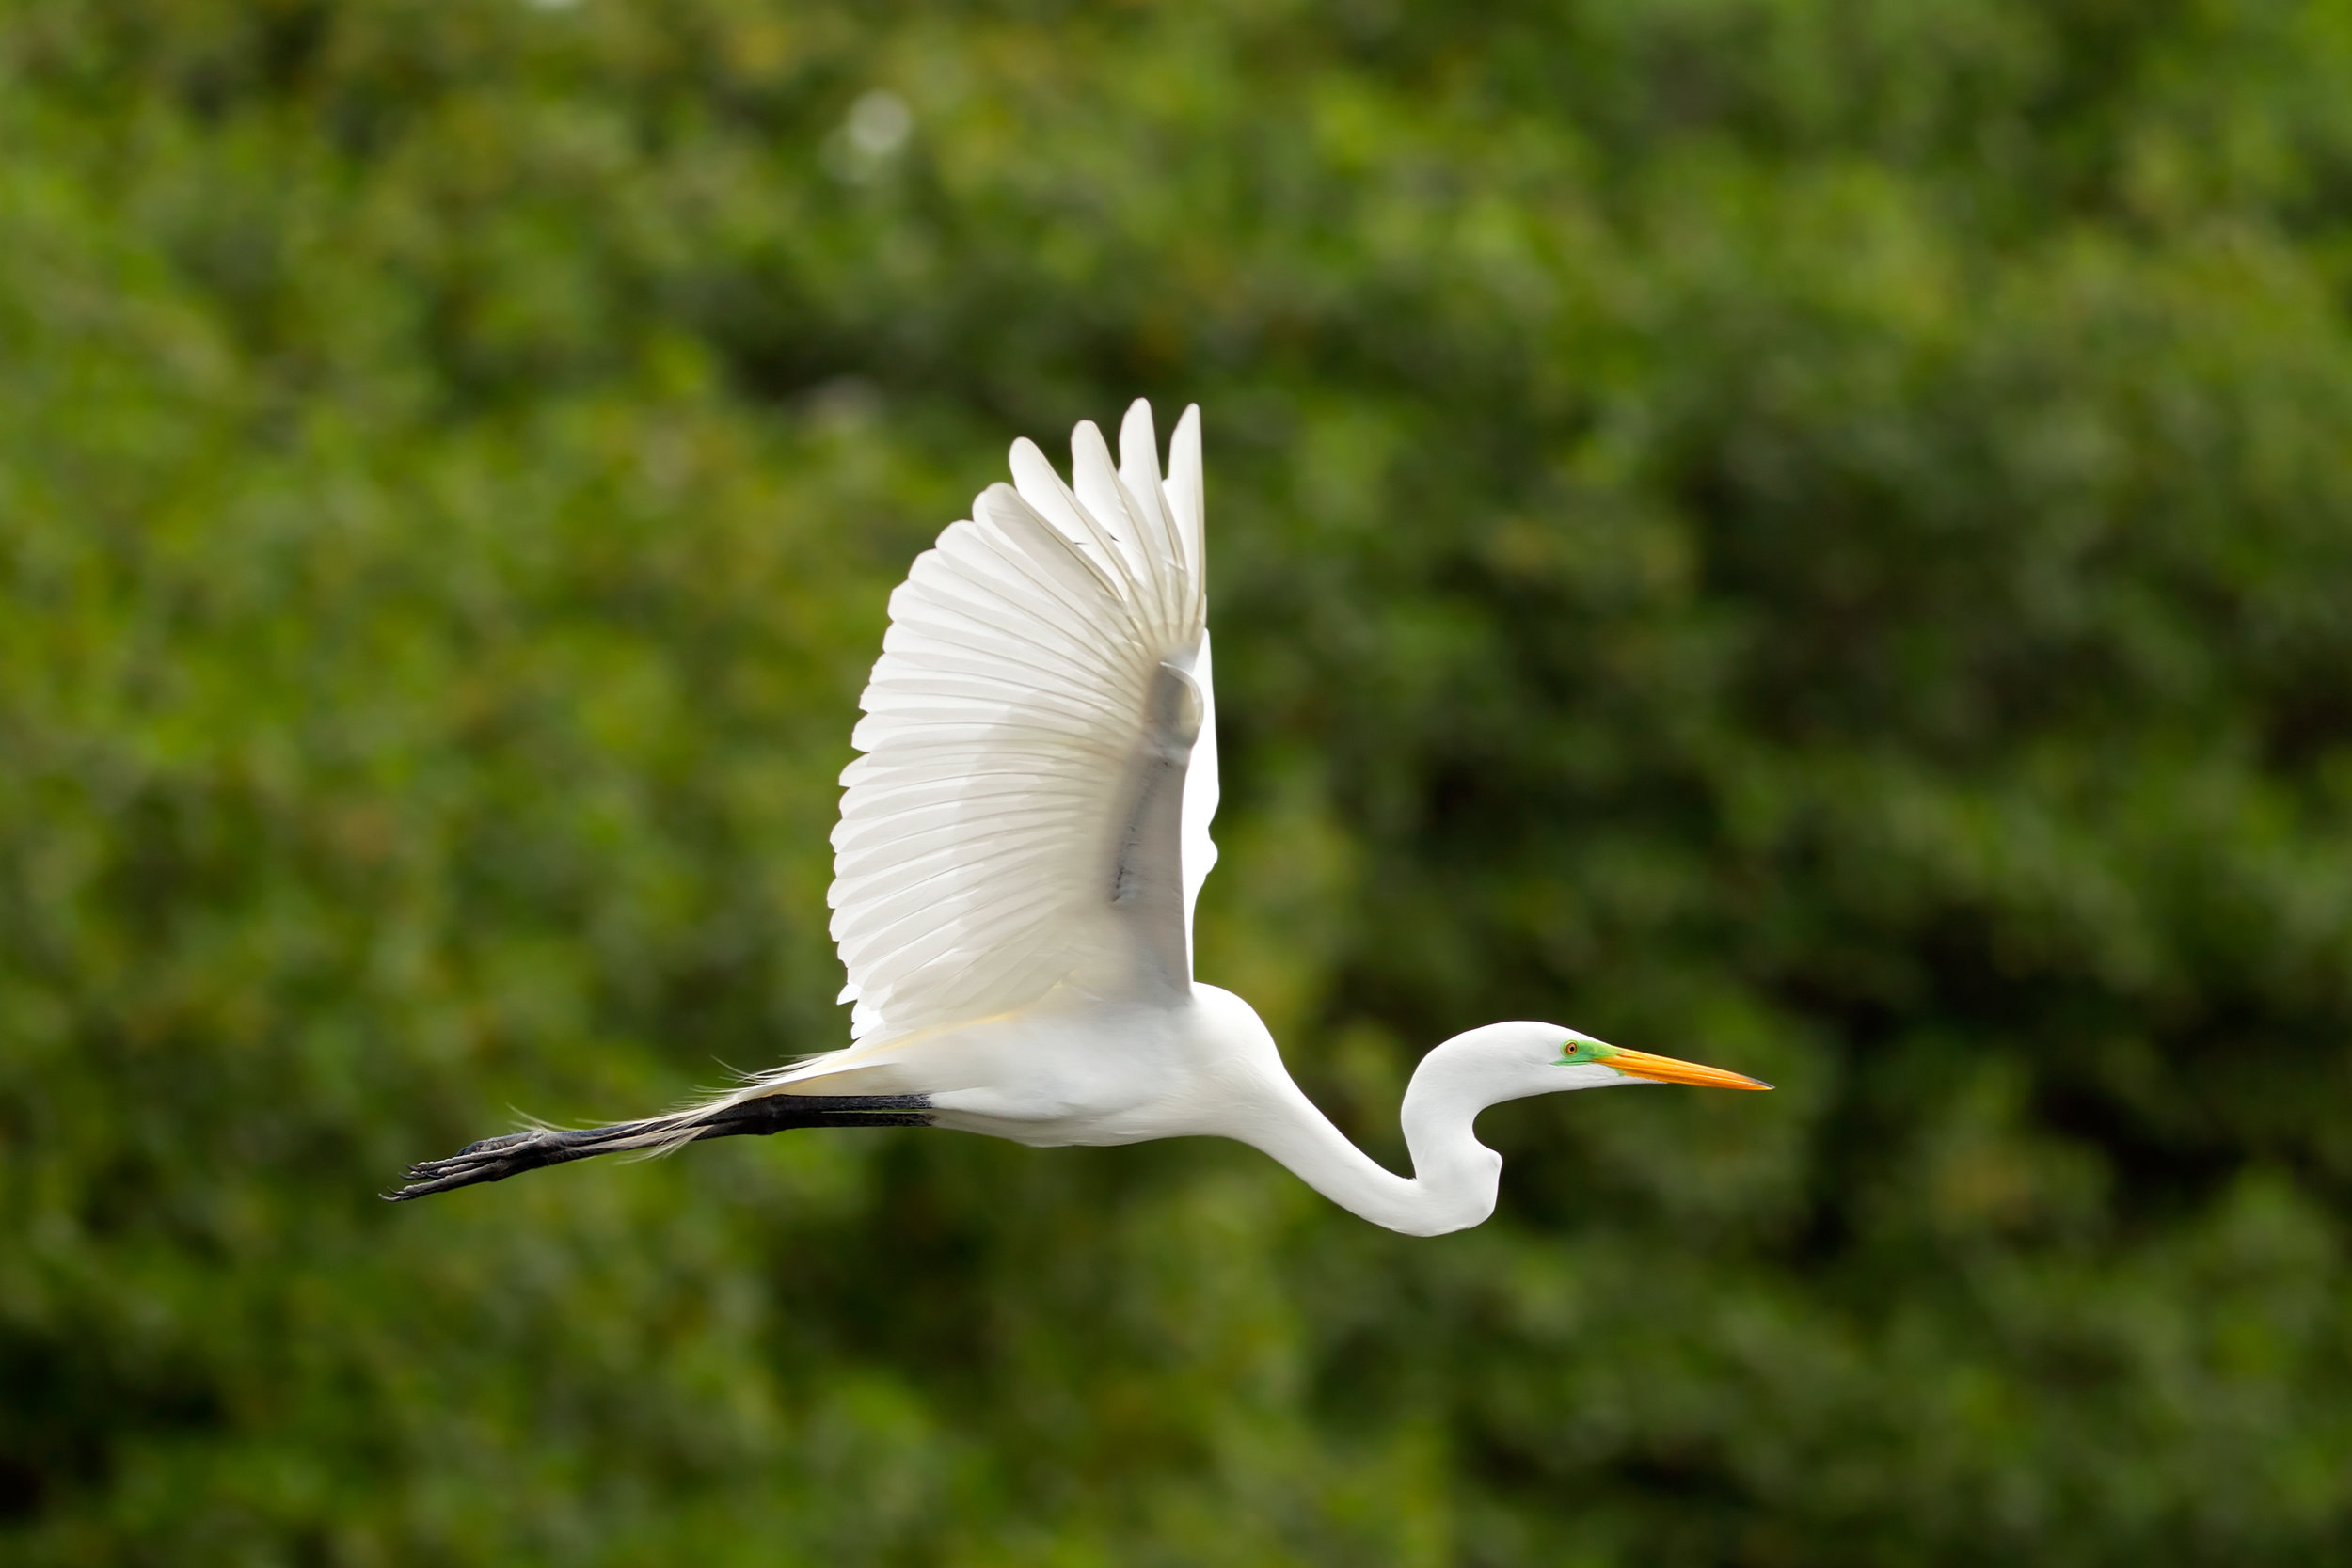 Great white egret3.jpg